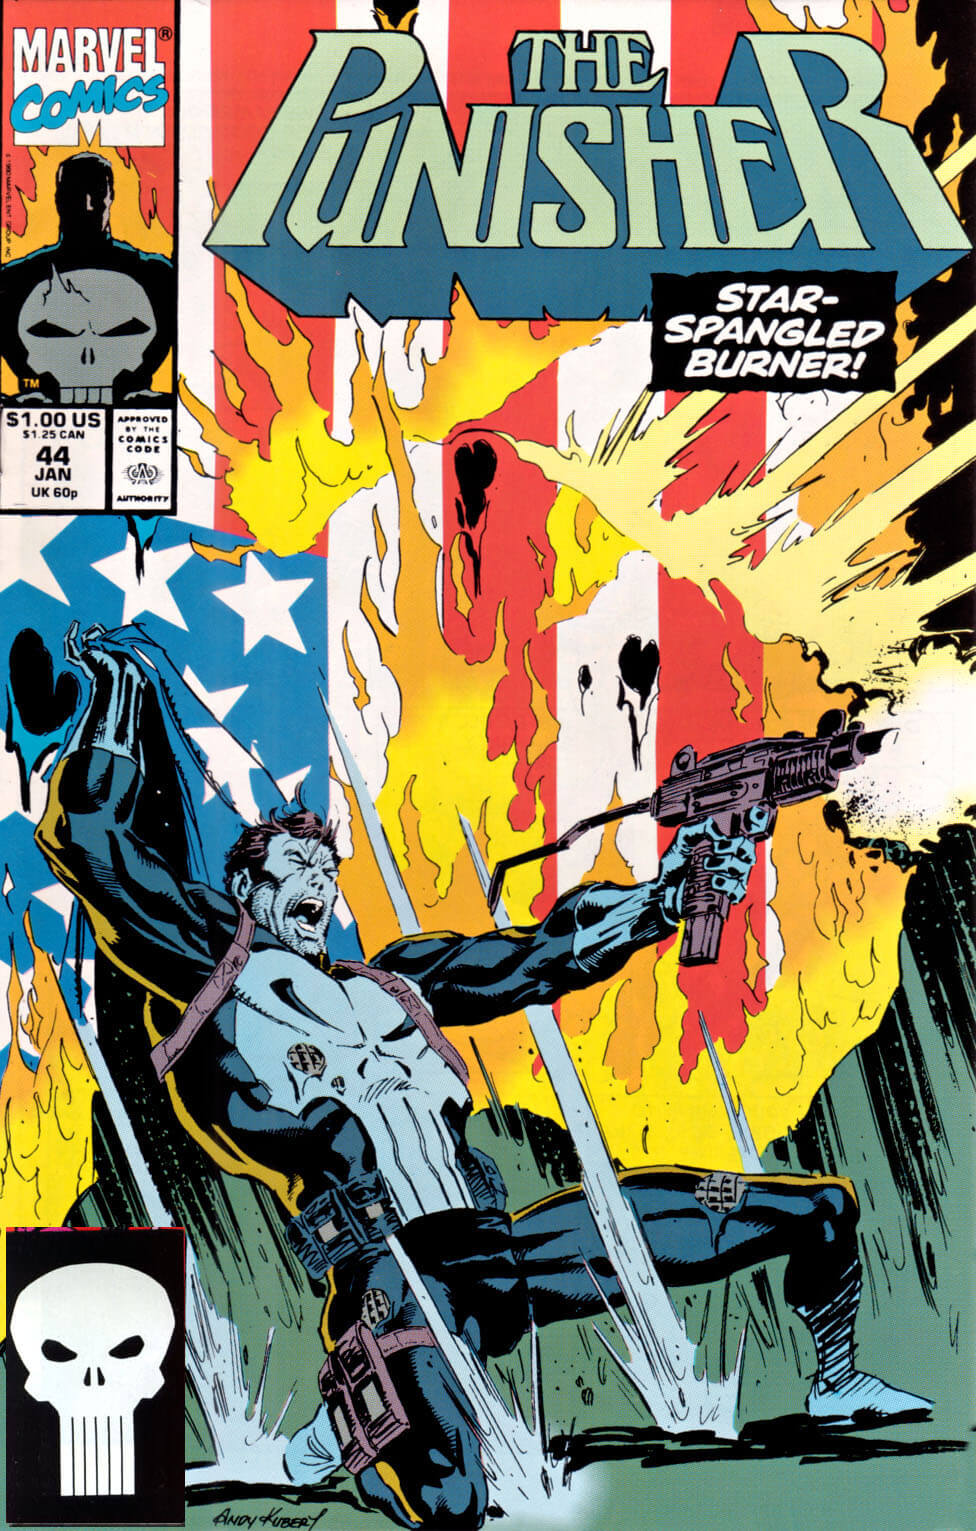 The Punisher Vol 2 #44